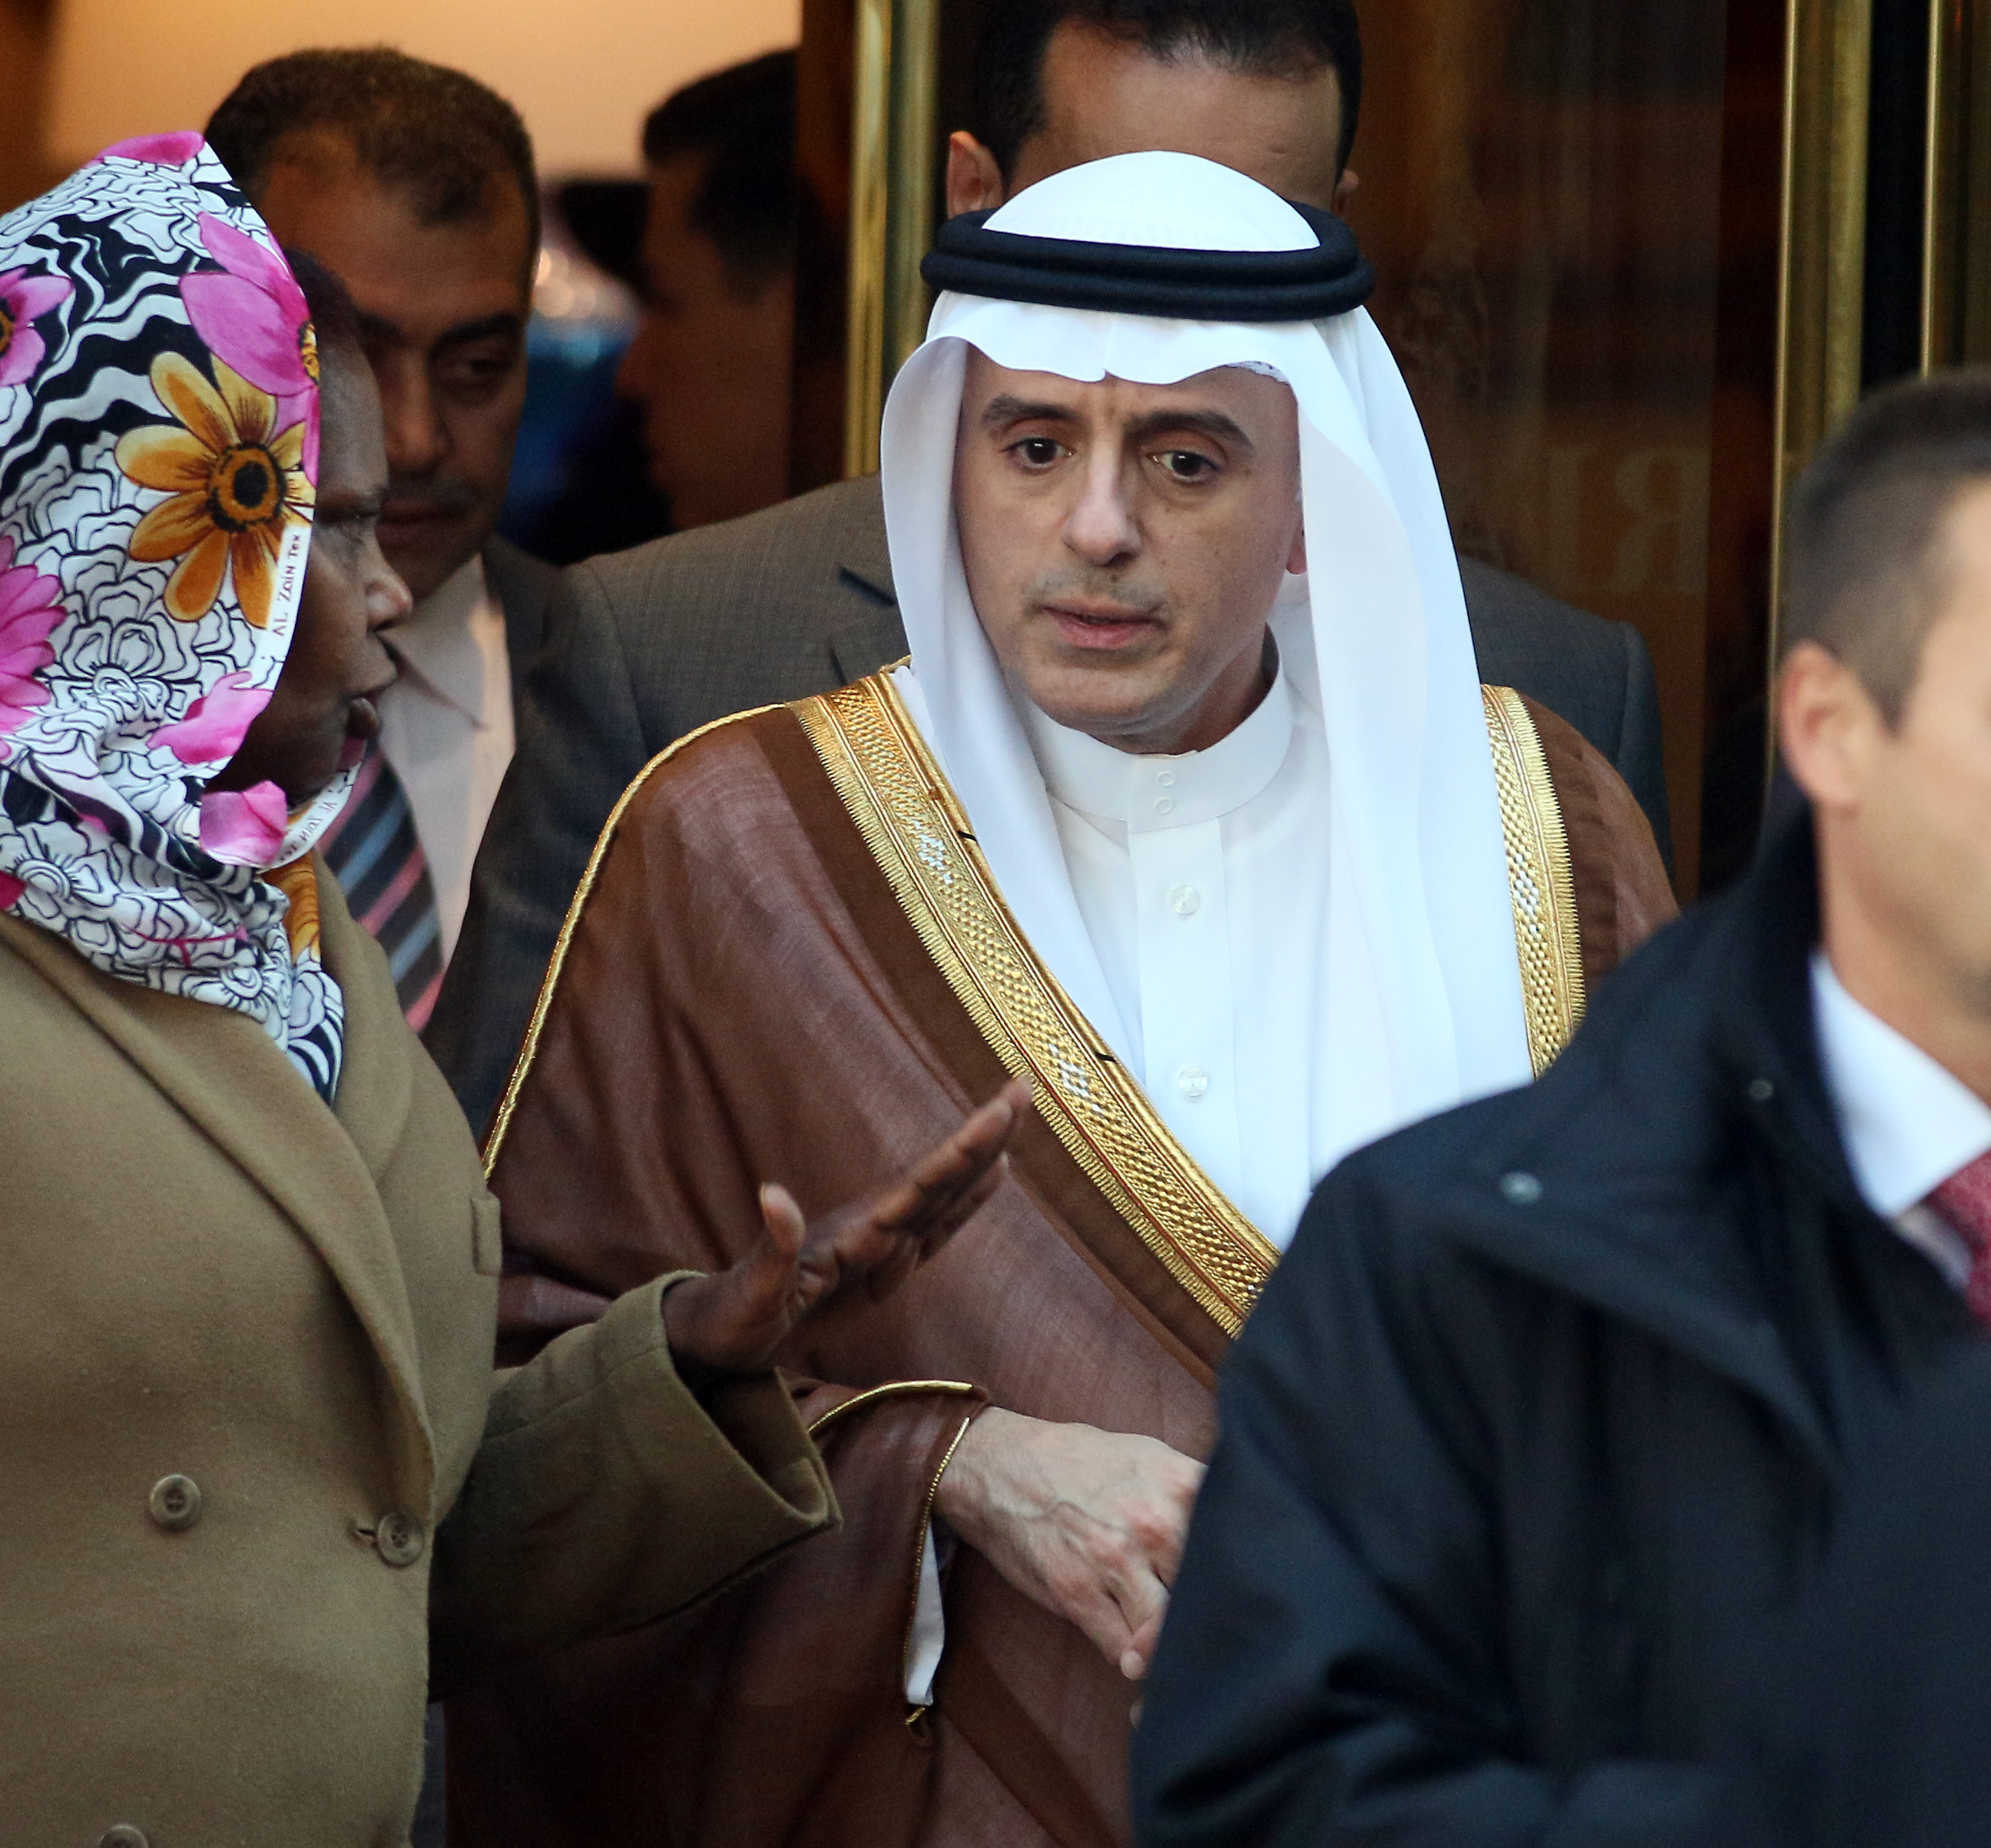 Saudi Arabia's Foreign Minister Adel al-Jubeir is leaving a hotel after a meeting in Vienna, Austria, Friday, Oct. 23, 2015.